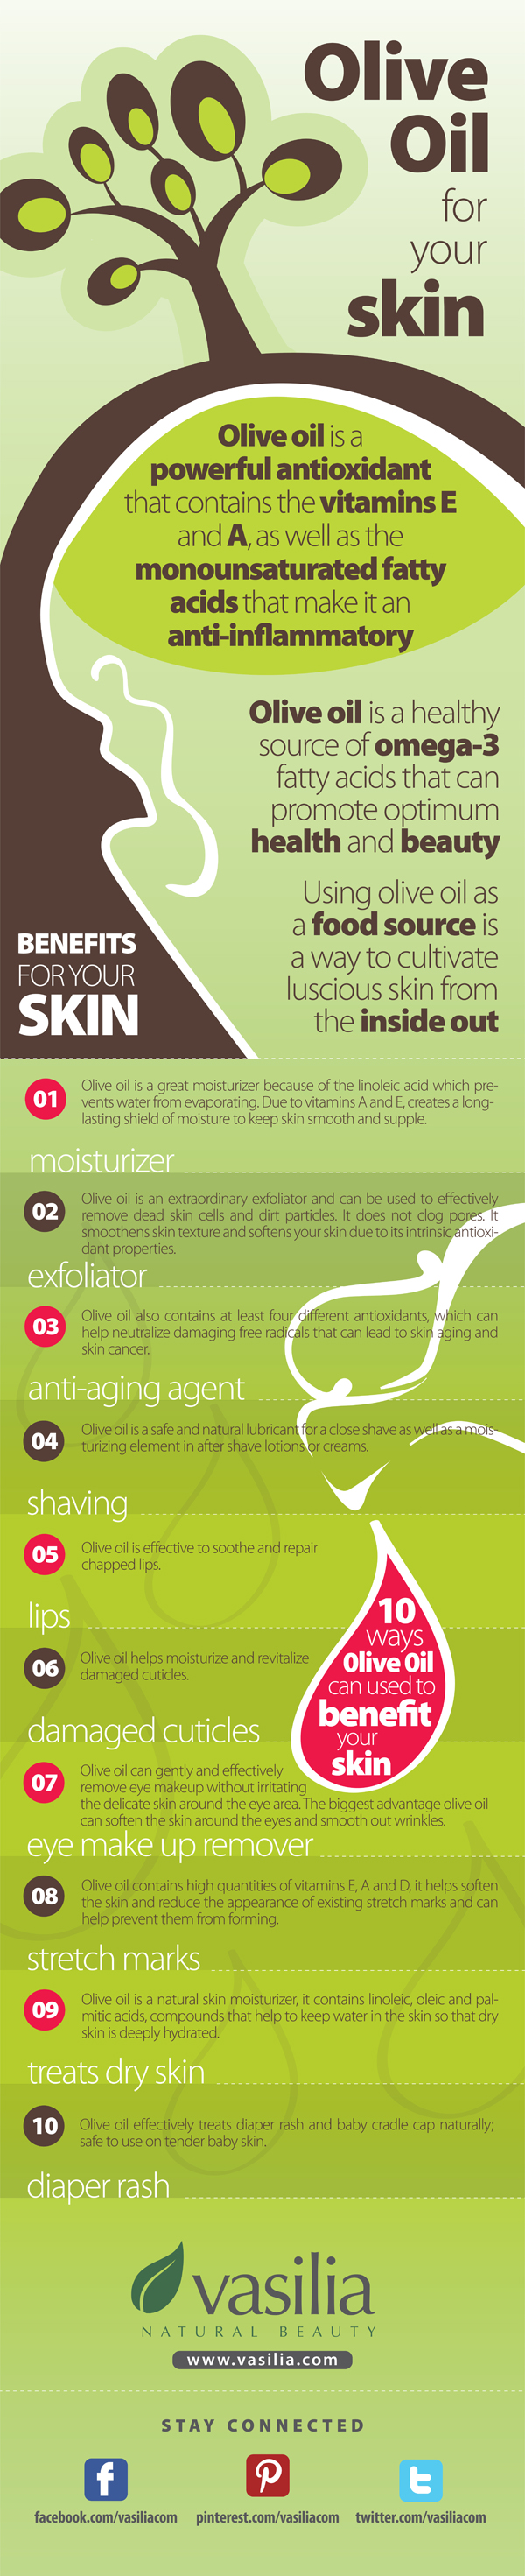 10 Amazing Ways To Use Olive Oil In Skin Care Infographic